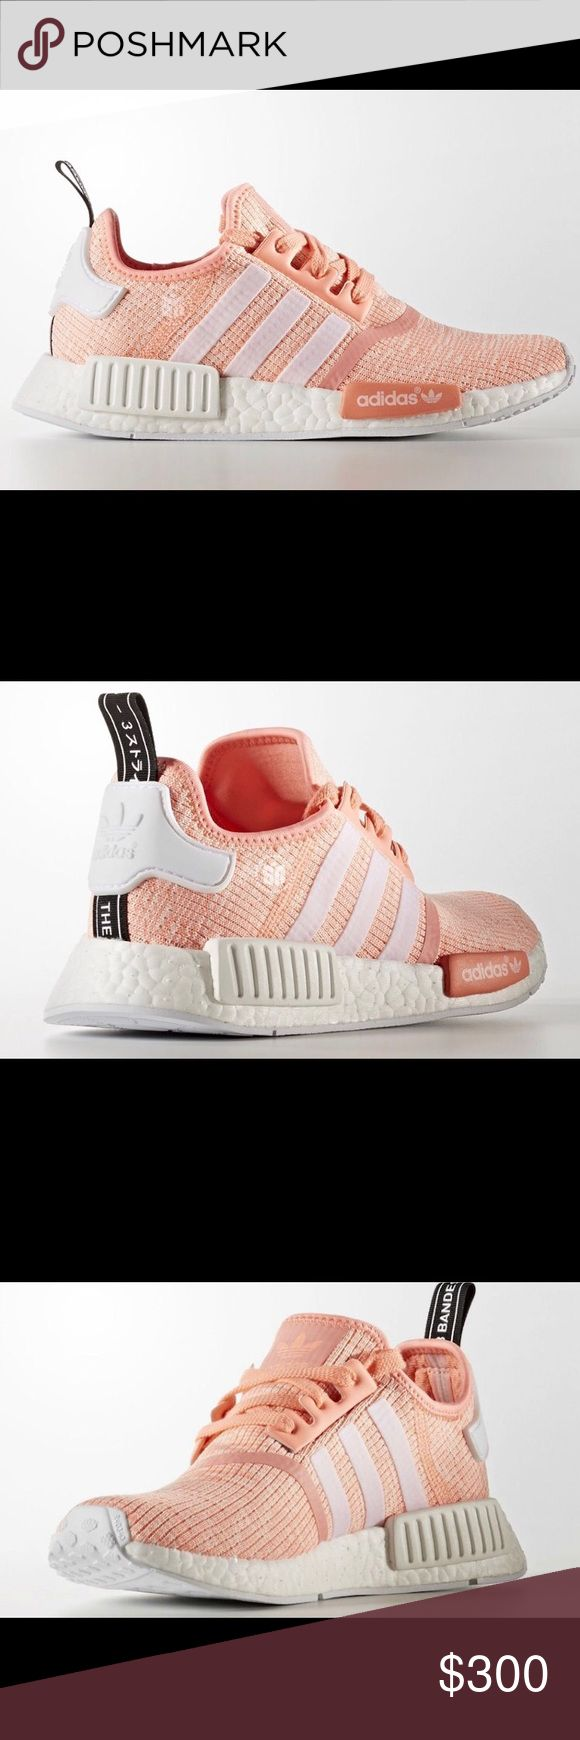 Adidas NMD Sun Glow -New Release New release 04-06-17. It has shipped from Adidas Warehouse. Size 5.5. No trades. Adidas Shoes Sneakers